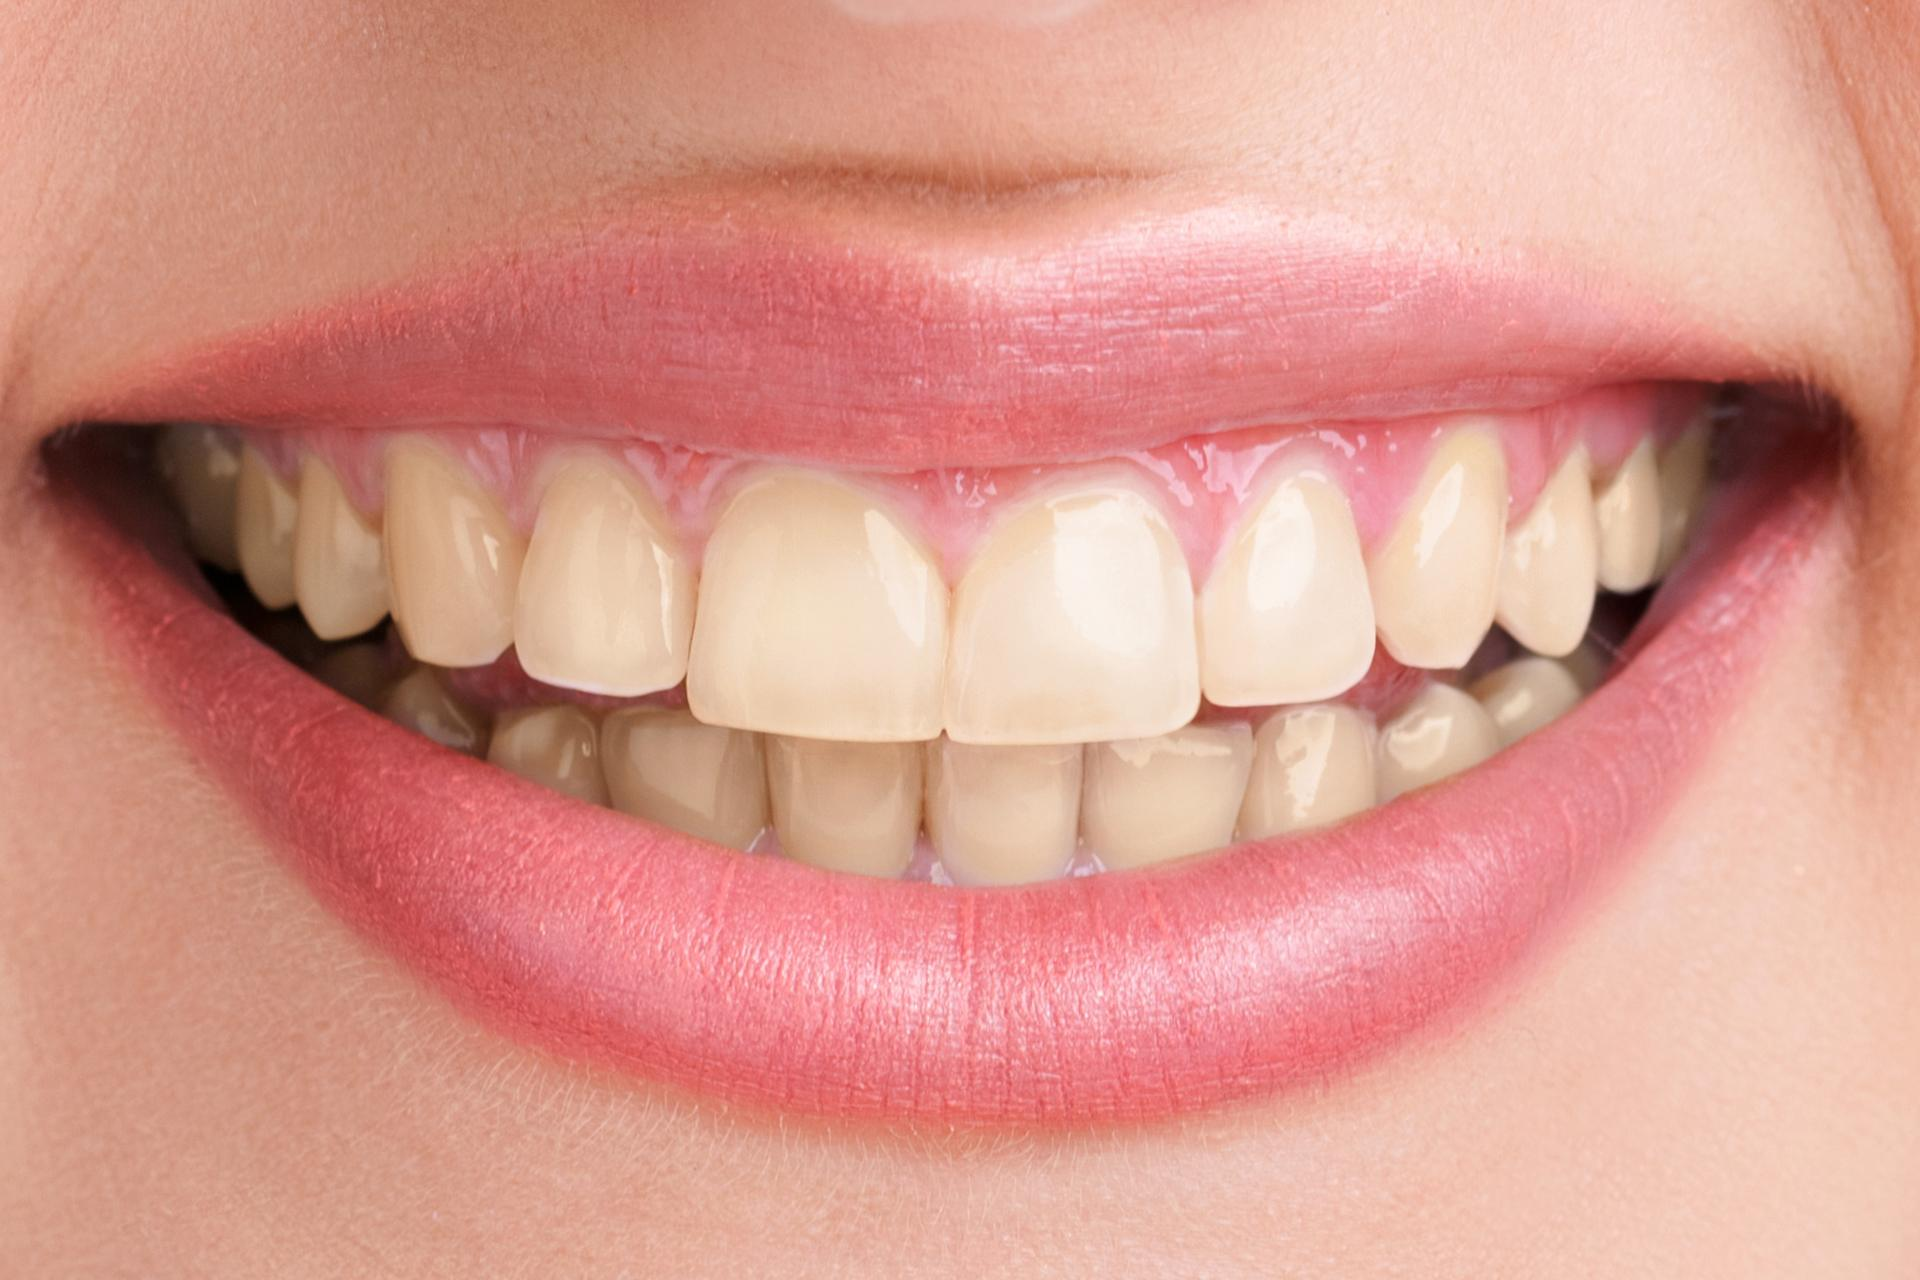 eeth-whitening-before